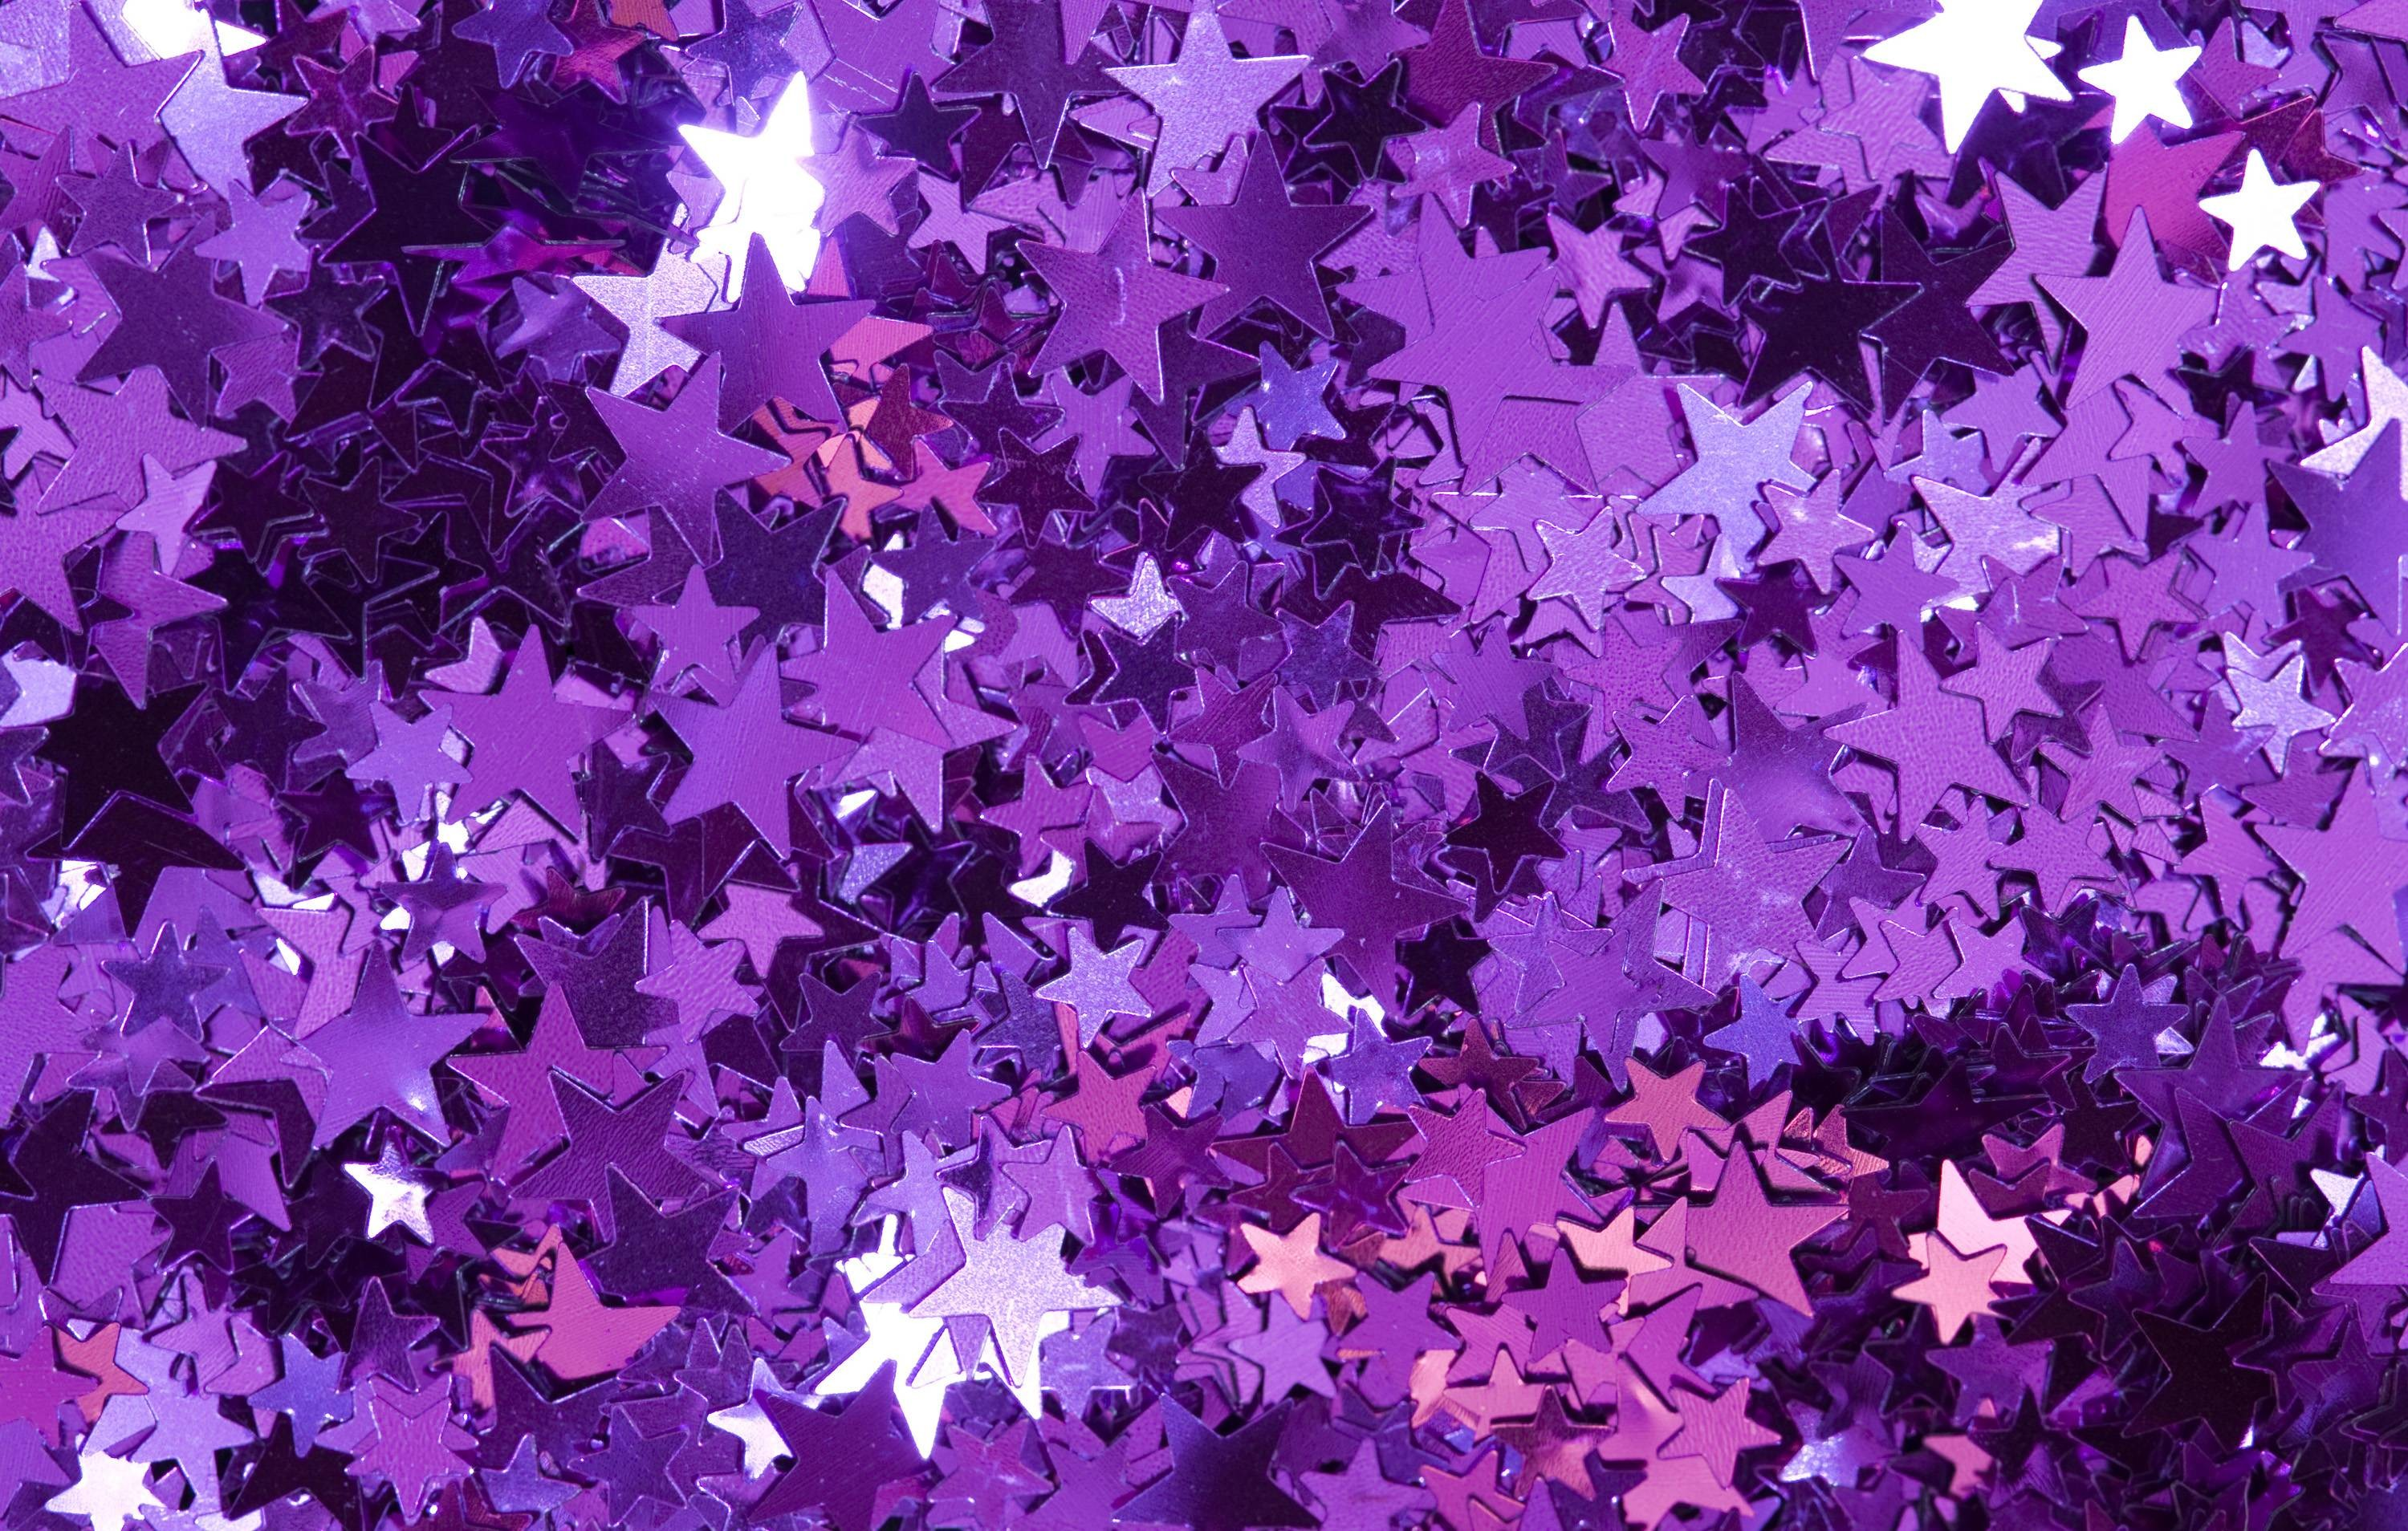 Metallic Purple Wallpaper  54  images  3000x1908 Glitter Background 14 344427 High Definition Wallpapers  wallalay